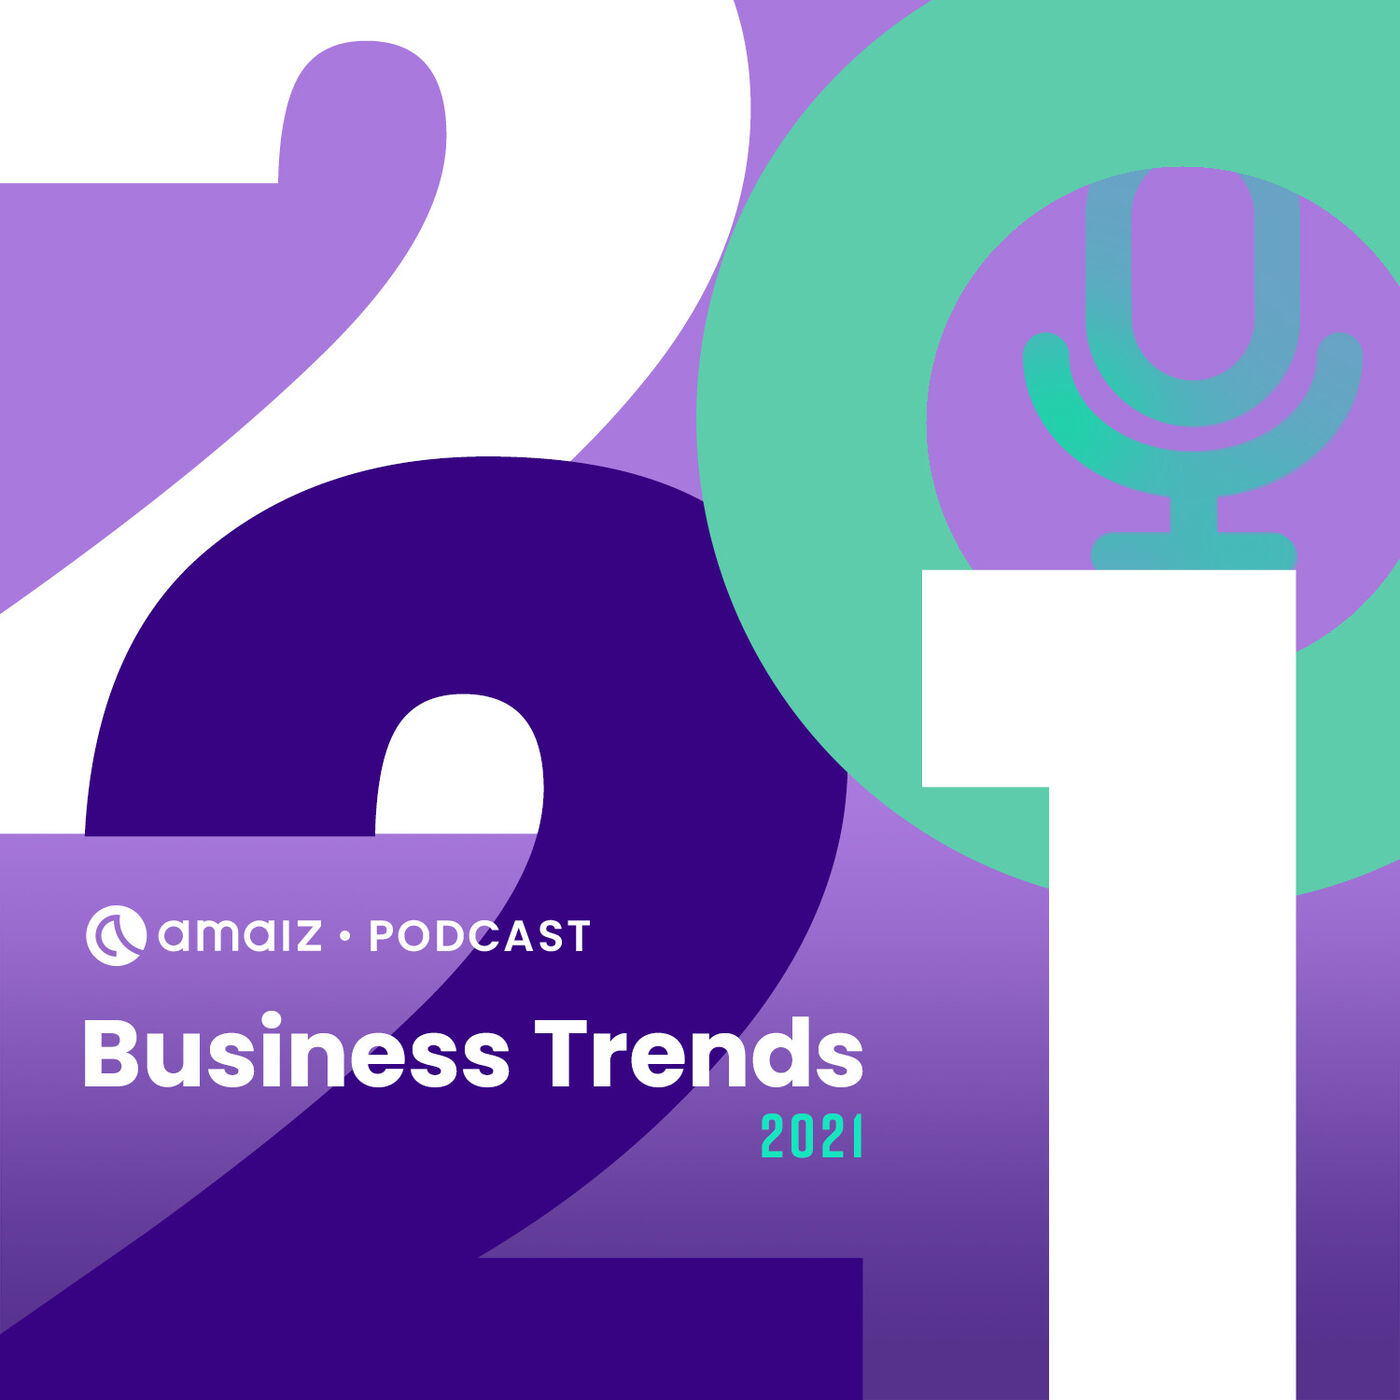 The Amaiz Podcast - Business Trends for 2021